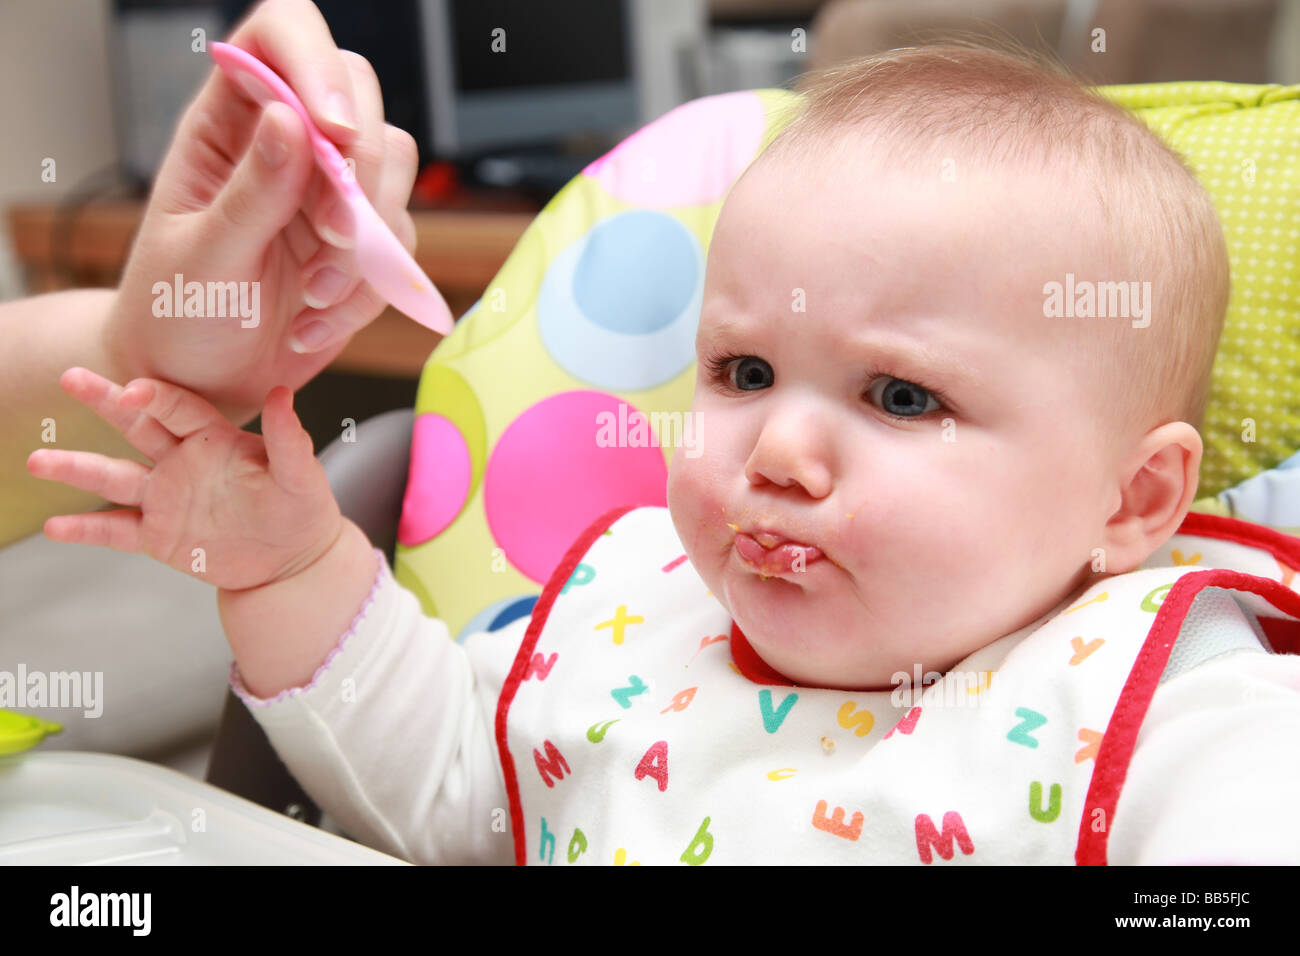 8 month old baby girl being spoon fed stock image